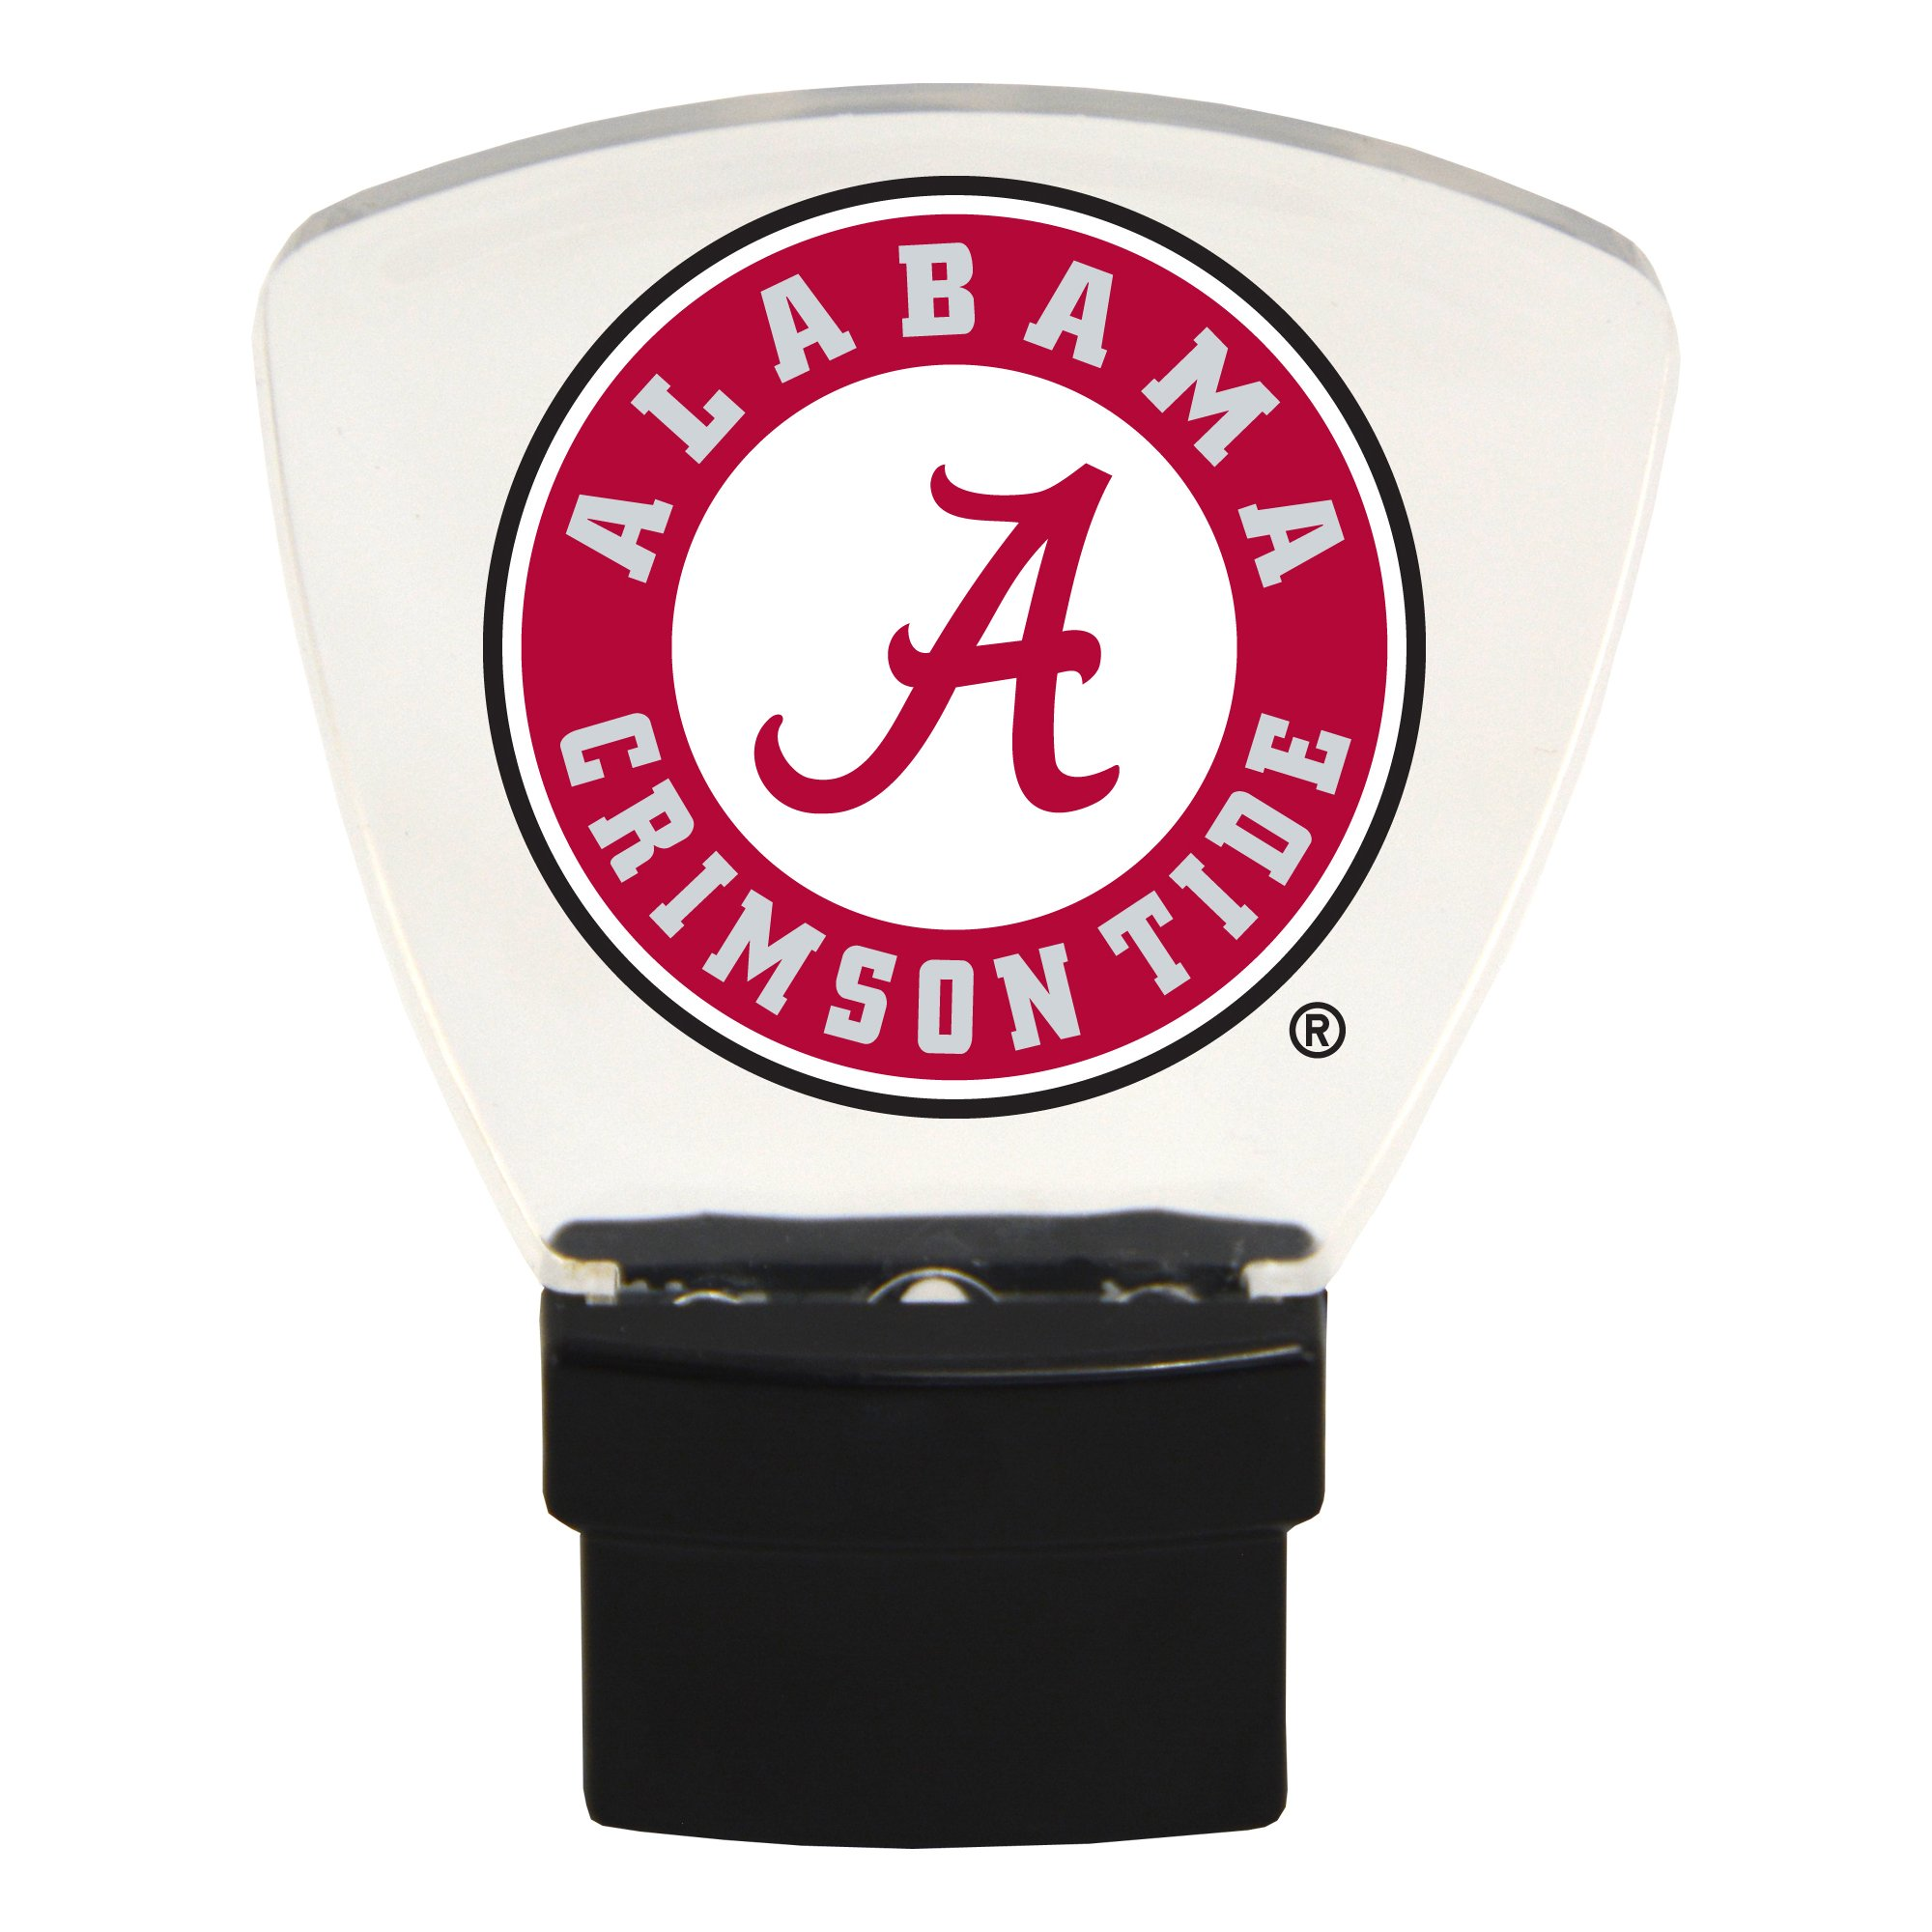 Authentic Street Signs NCAA Officially Licensed-LED Night Light-Super Energy Efficient-Prime Power Saving 0.5 watt, Plug in-Great Sports Fan Gift for Adults-Babies-Kids Room (Alabama Crimson Tide)